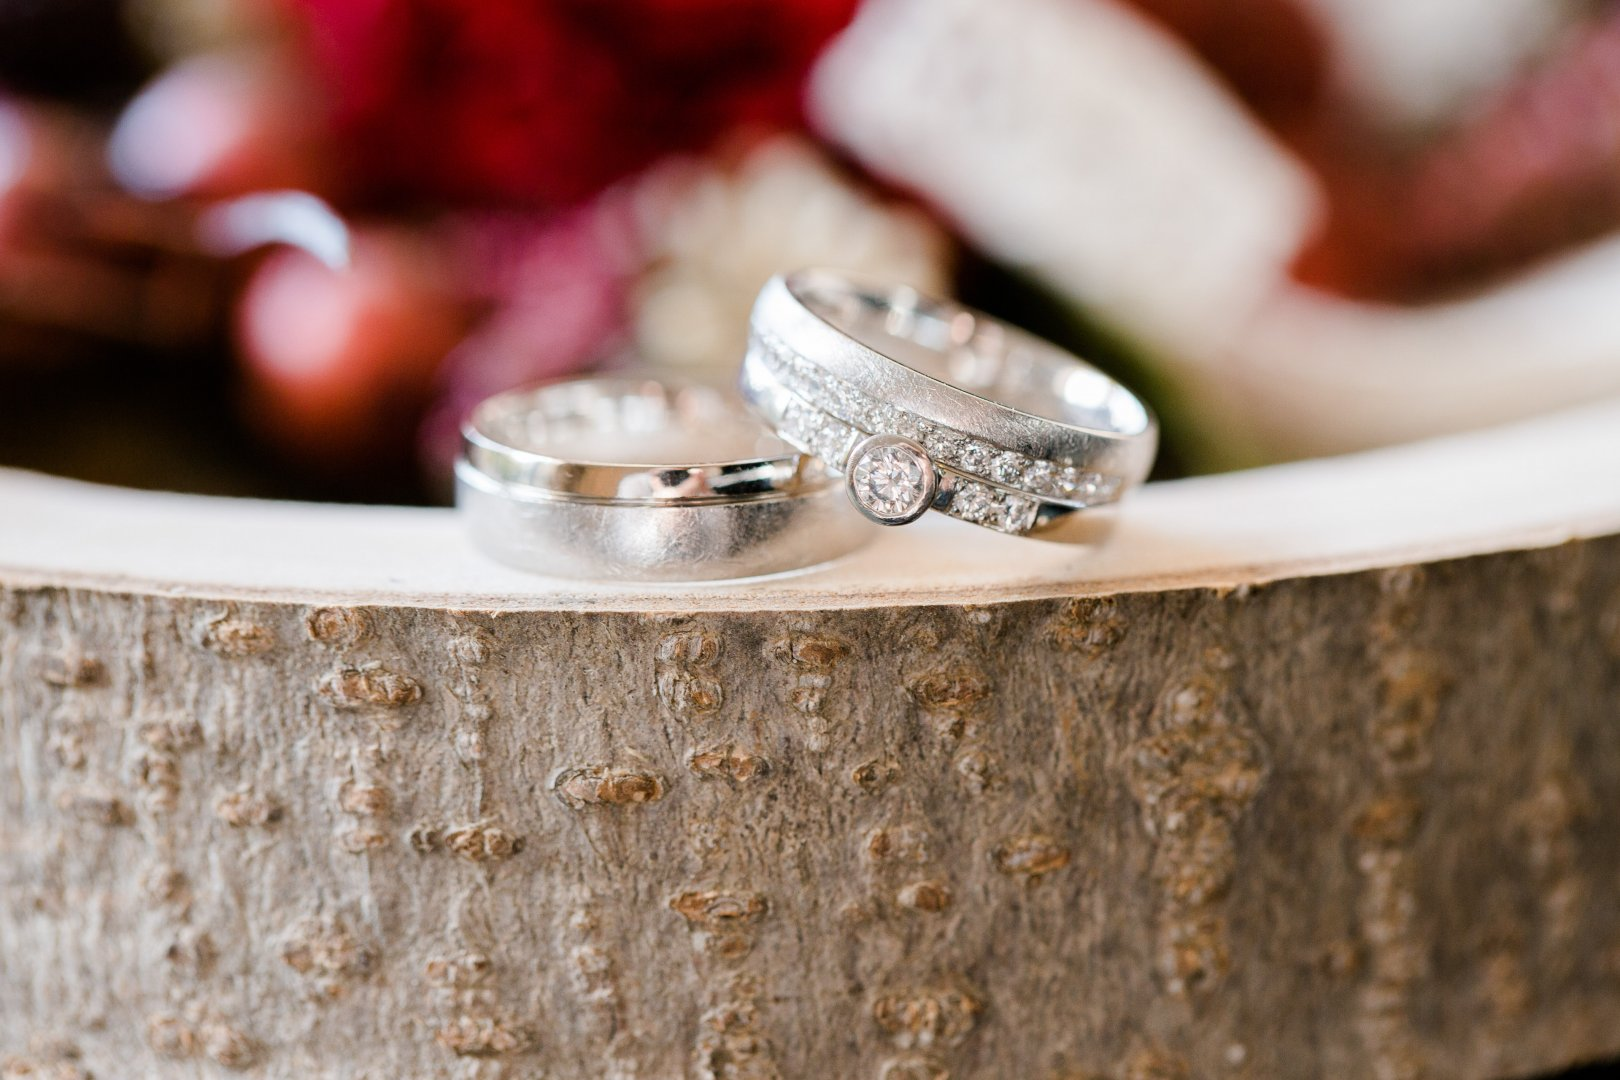 Ring Jewellery Wedding ring Fashion accessory Wedding ceremony supply Pink Engagement ring Finger Metal Silver Engagement Diamond Gemstone Ceremony Macro photography Marriage